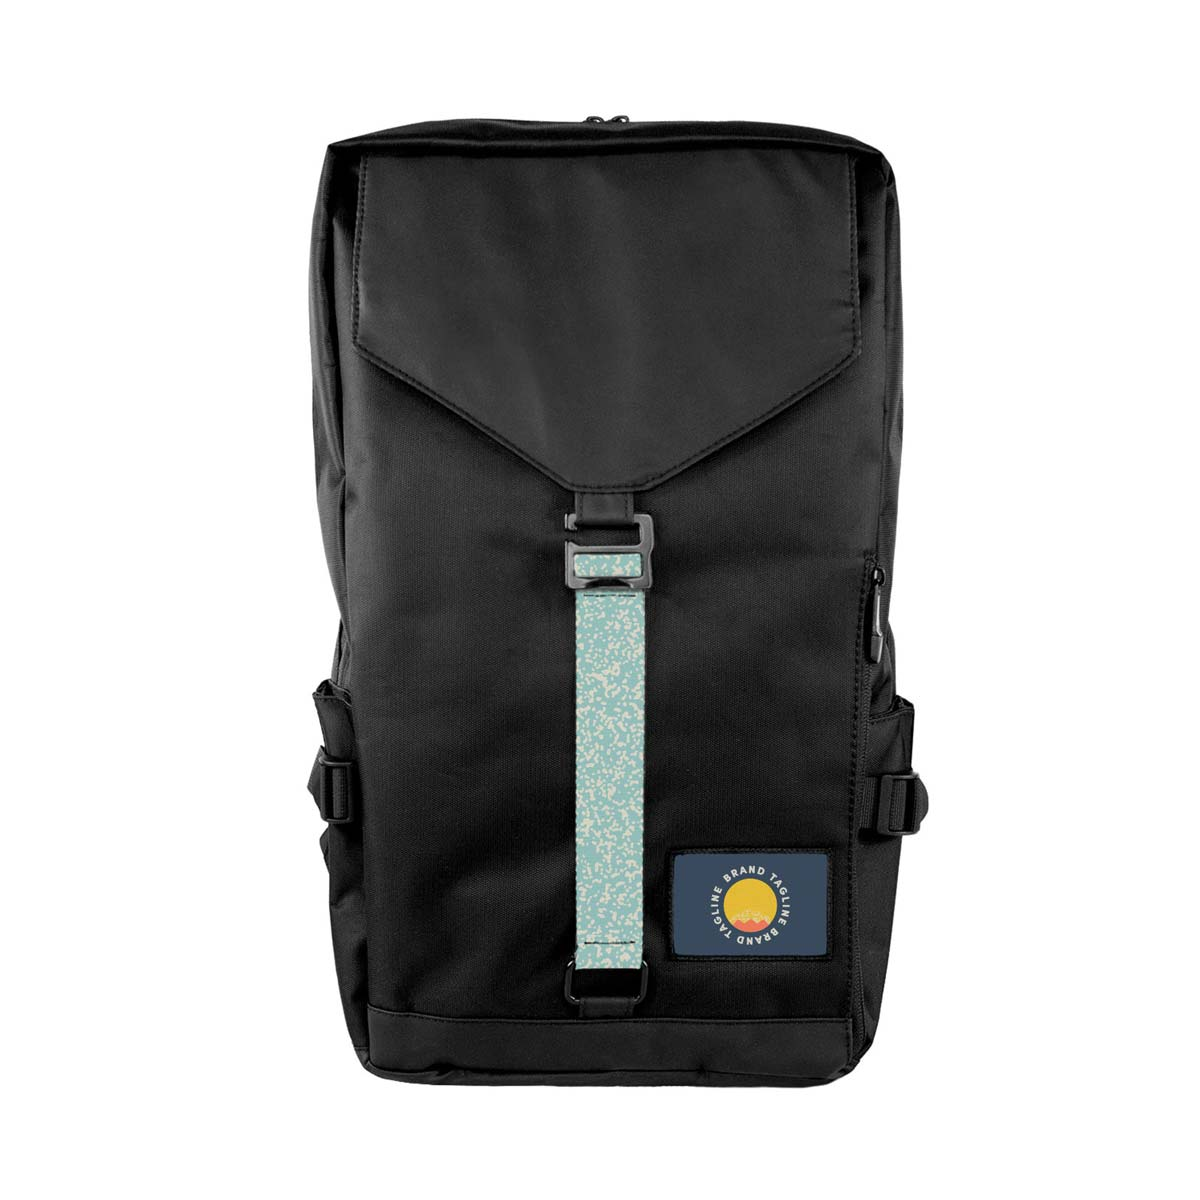 313811 maguire pack full color patch and strap